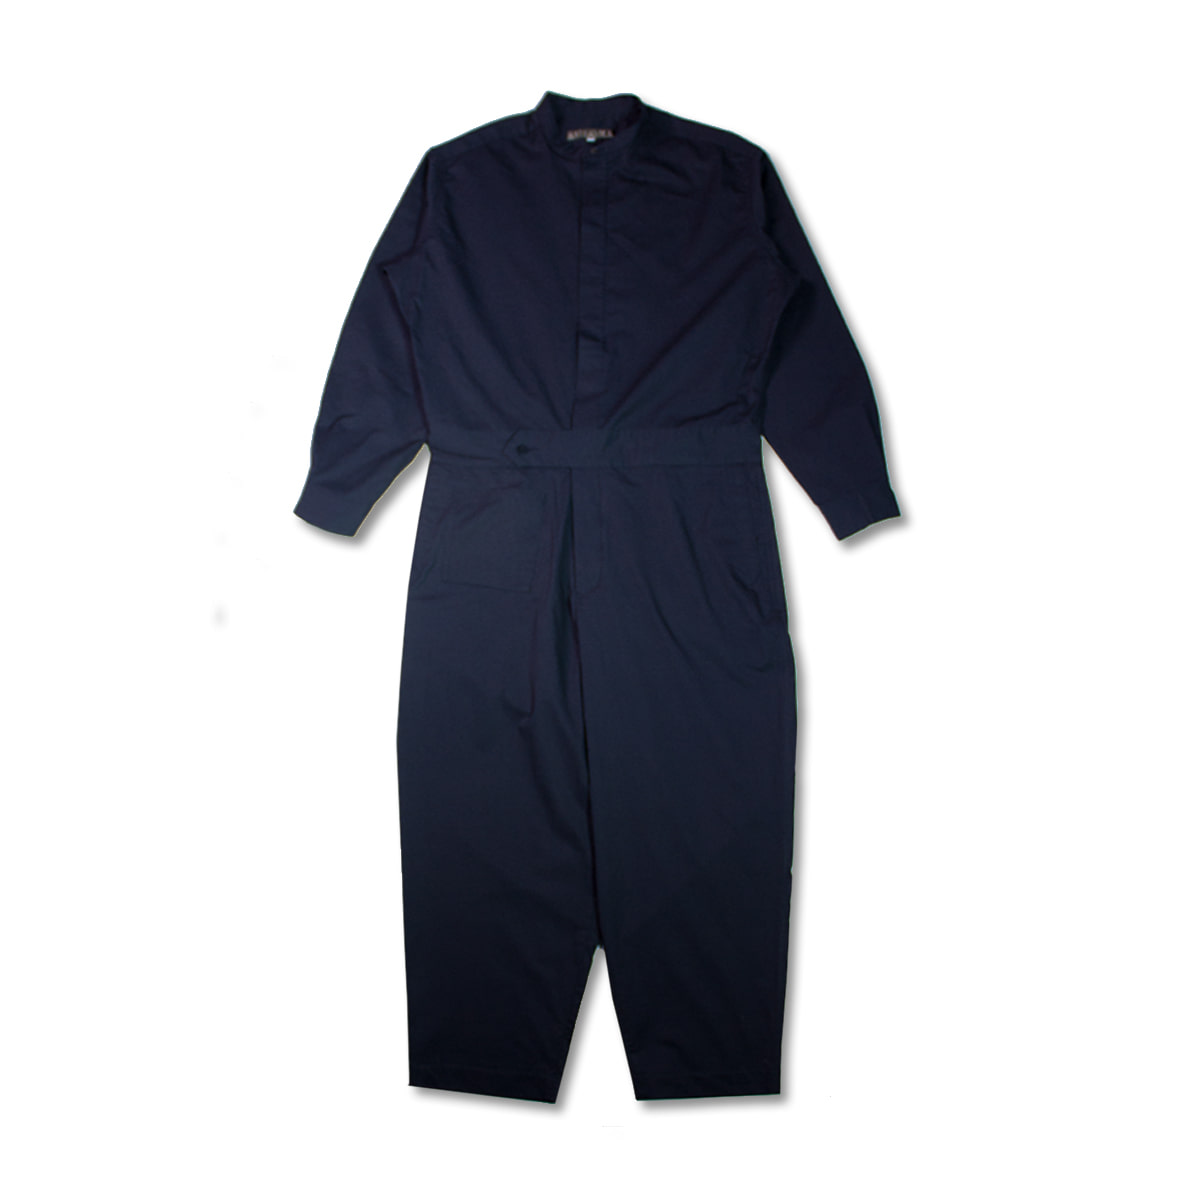 [HAVERSACK] COTTON SATIN JUMPSUIT 'NAVY'